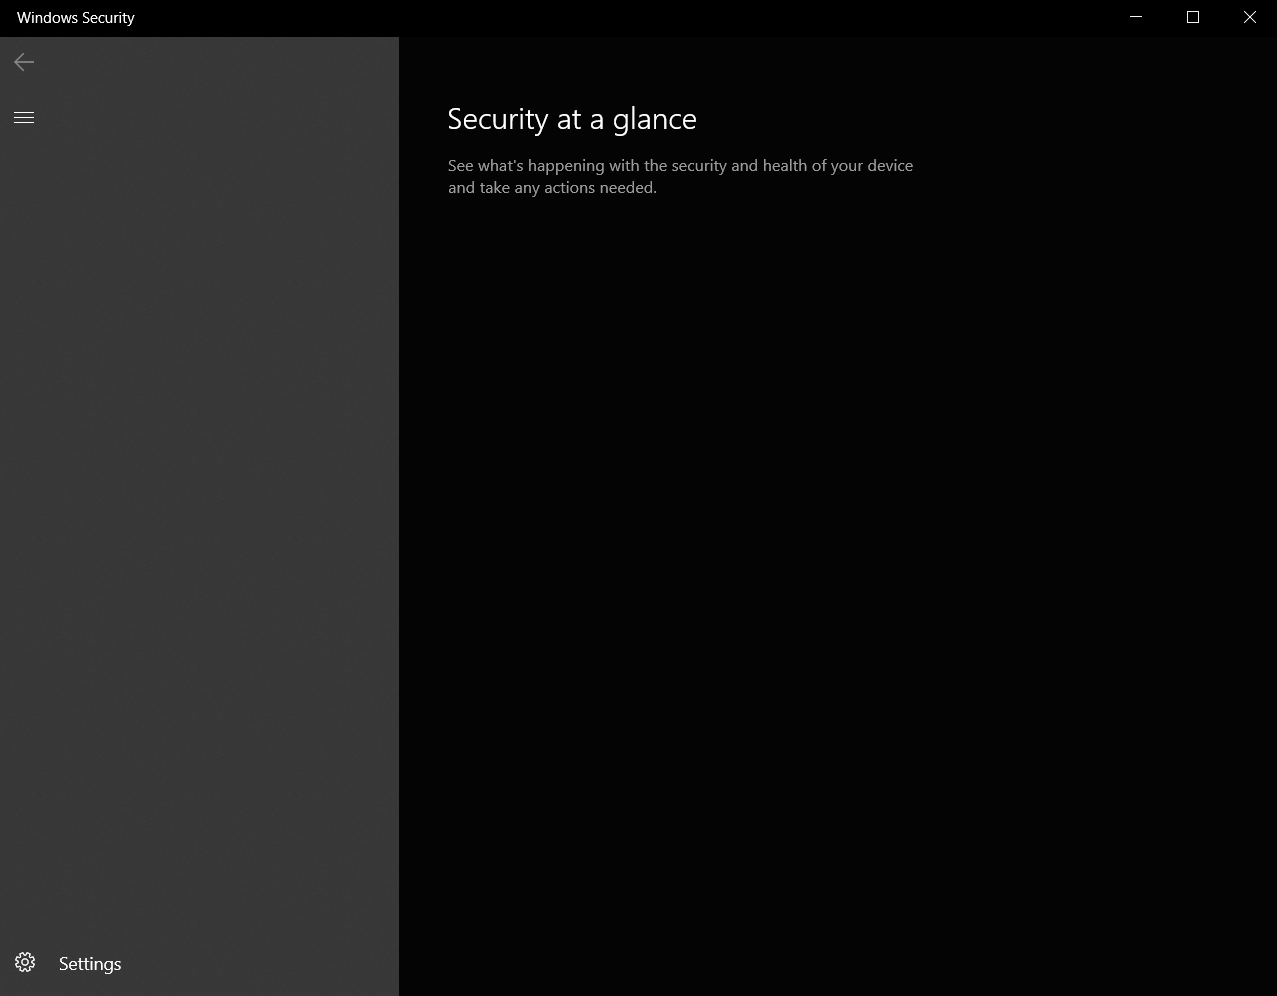 Windows Security is blank and Windows Defender isn't running. Please help, what to do? 8ae90910-251b-44d0-b494-9c50260adba6?upload=true.png